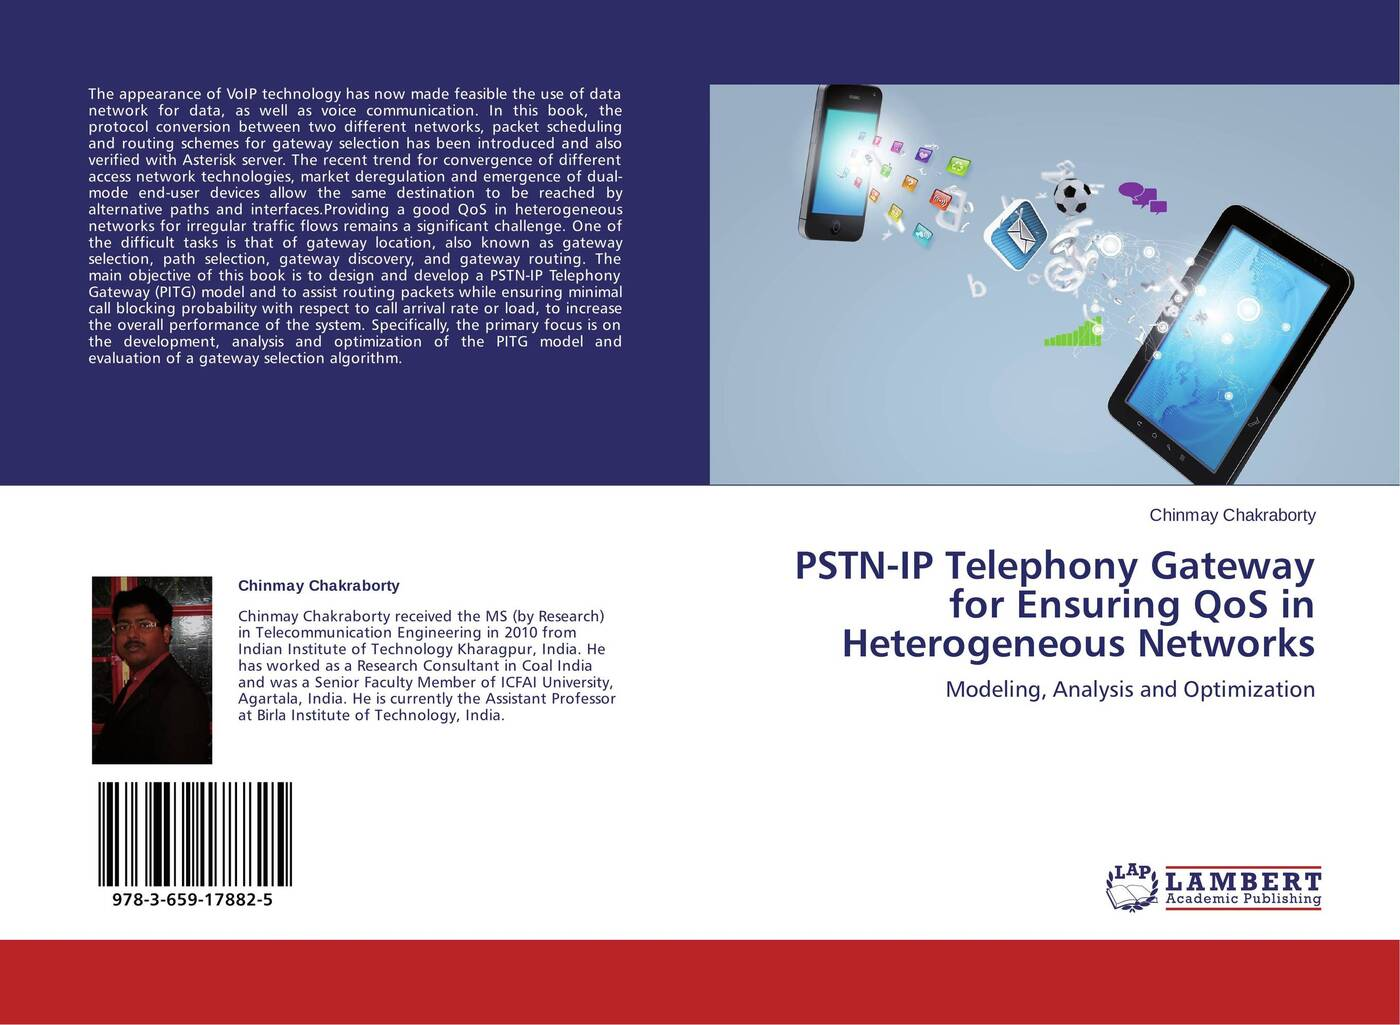 Chinmay Chakraborty PSTN-IP Telephony Gateway for Ensuring QoS in Heterogeneous Networks 4 fxs ports voip ata gateway ht842t fxs gateway ata sip gateway